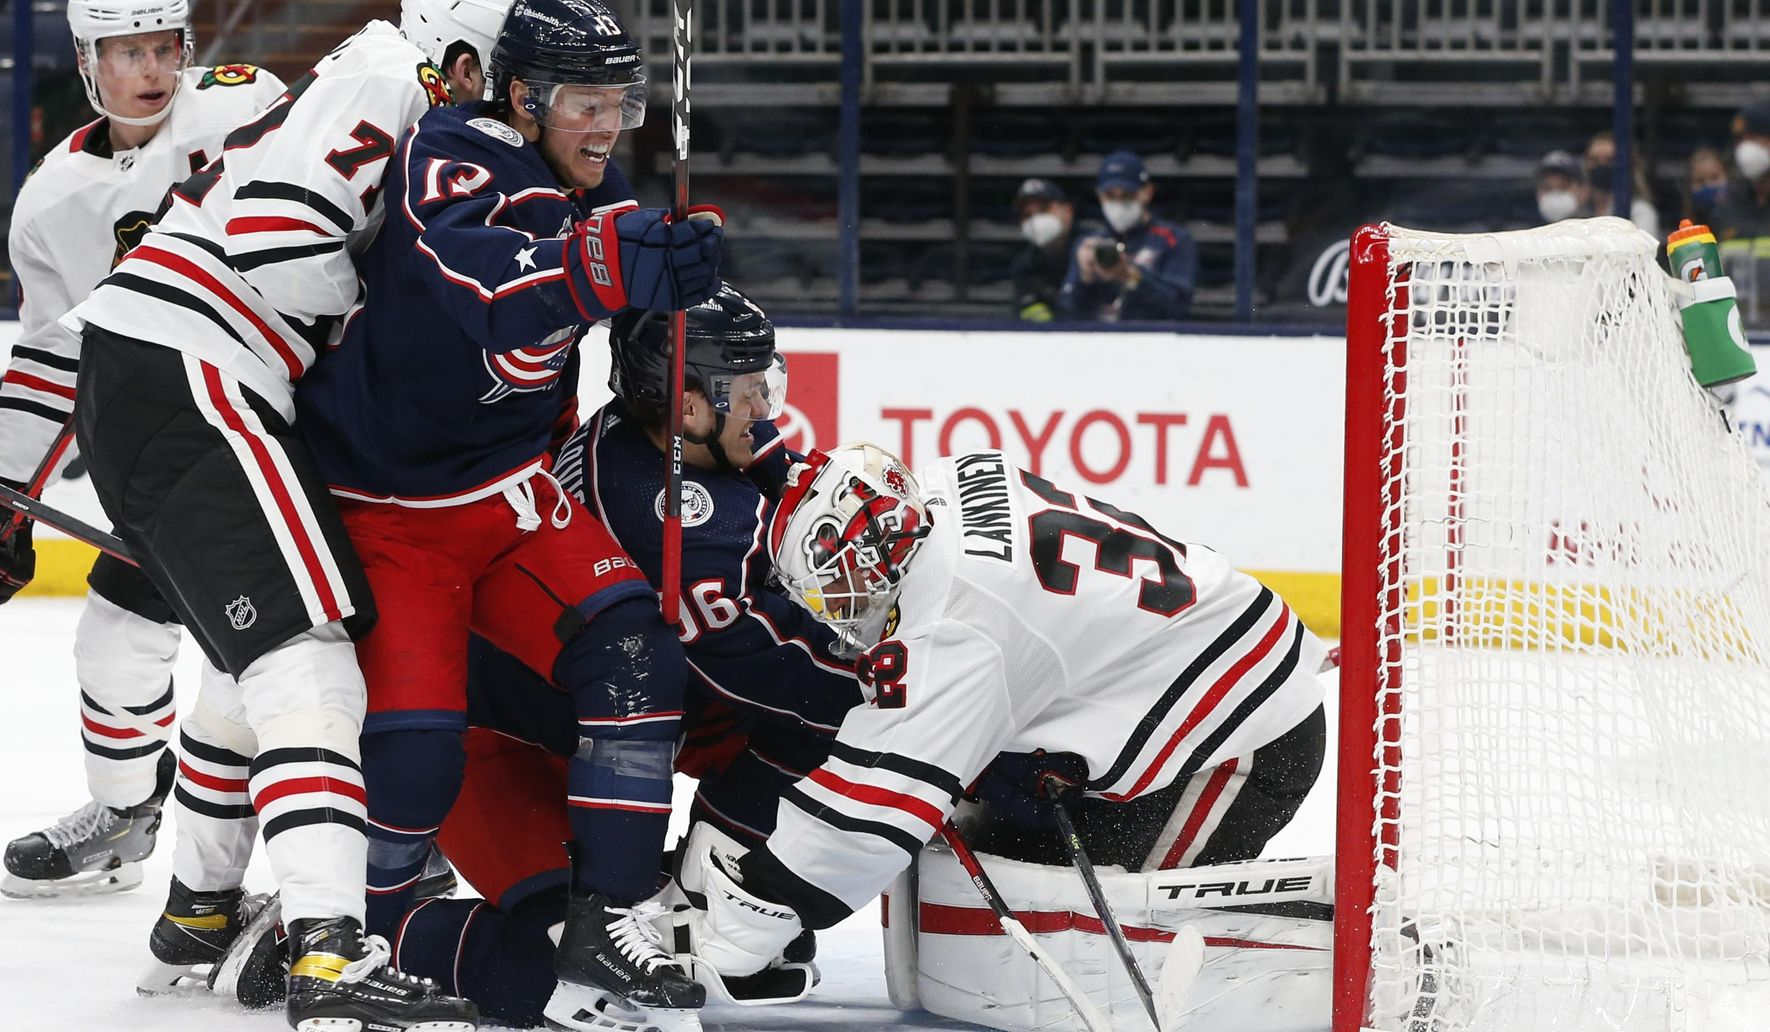 DeBrincat, Blackhawks rally to beat Blue Jackets 4-3